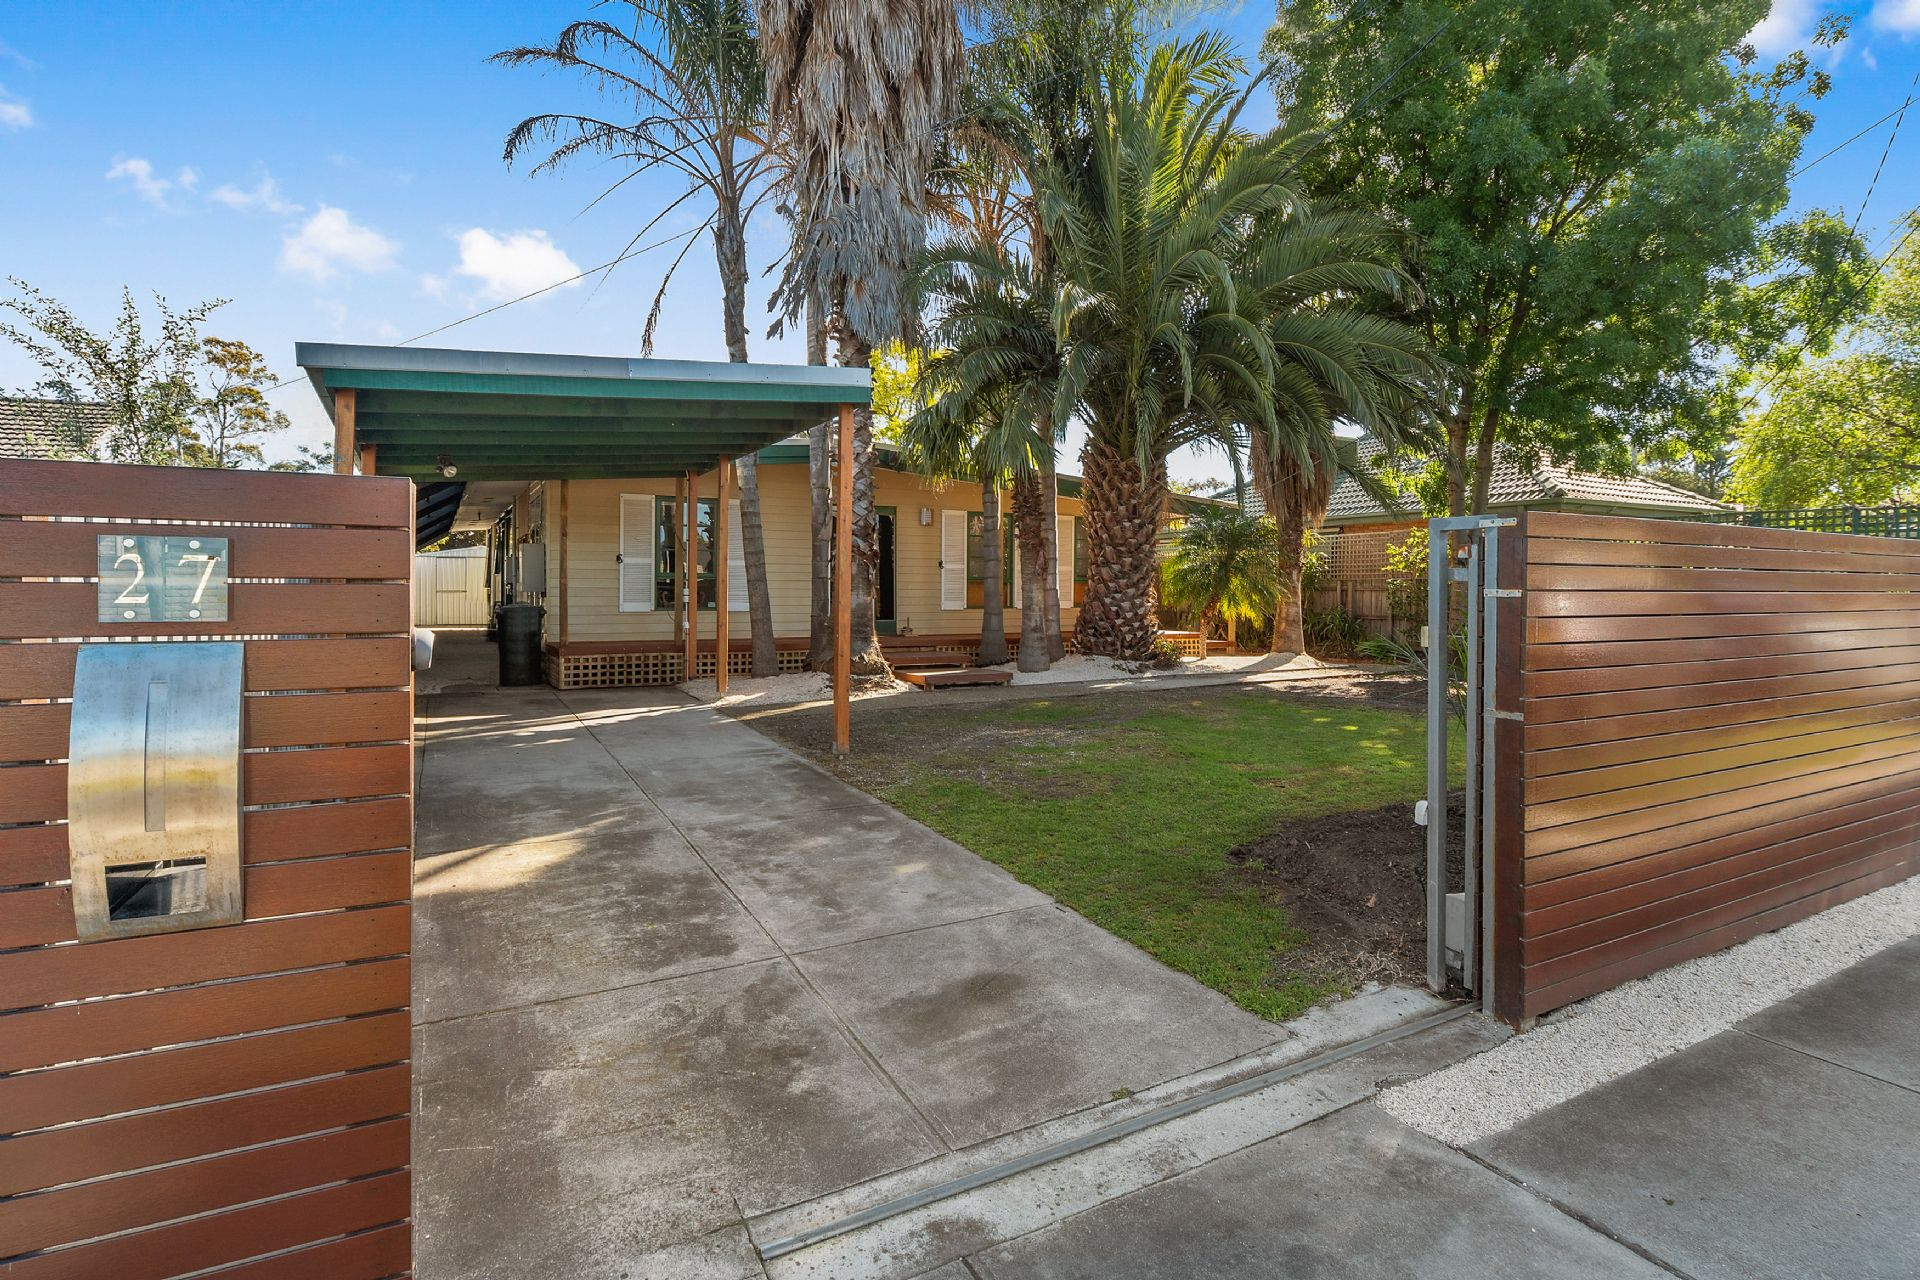 27 Centenary Street, SEAFORD, VIC, 3198 - Image